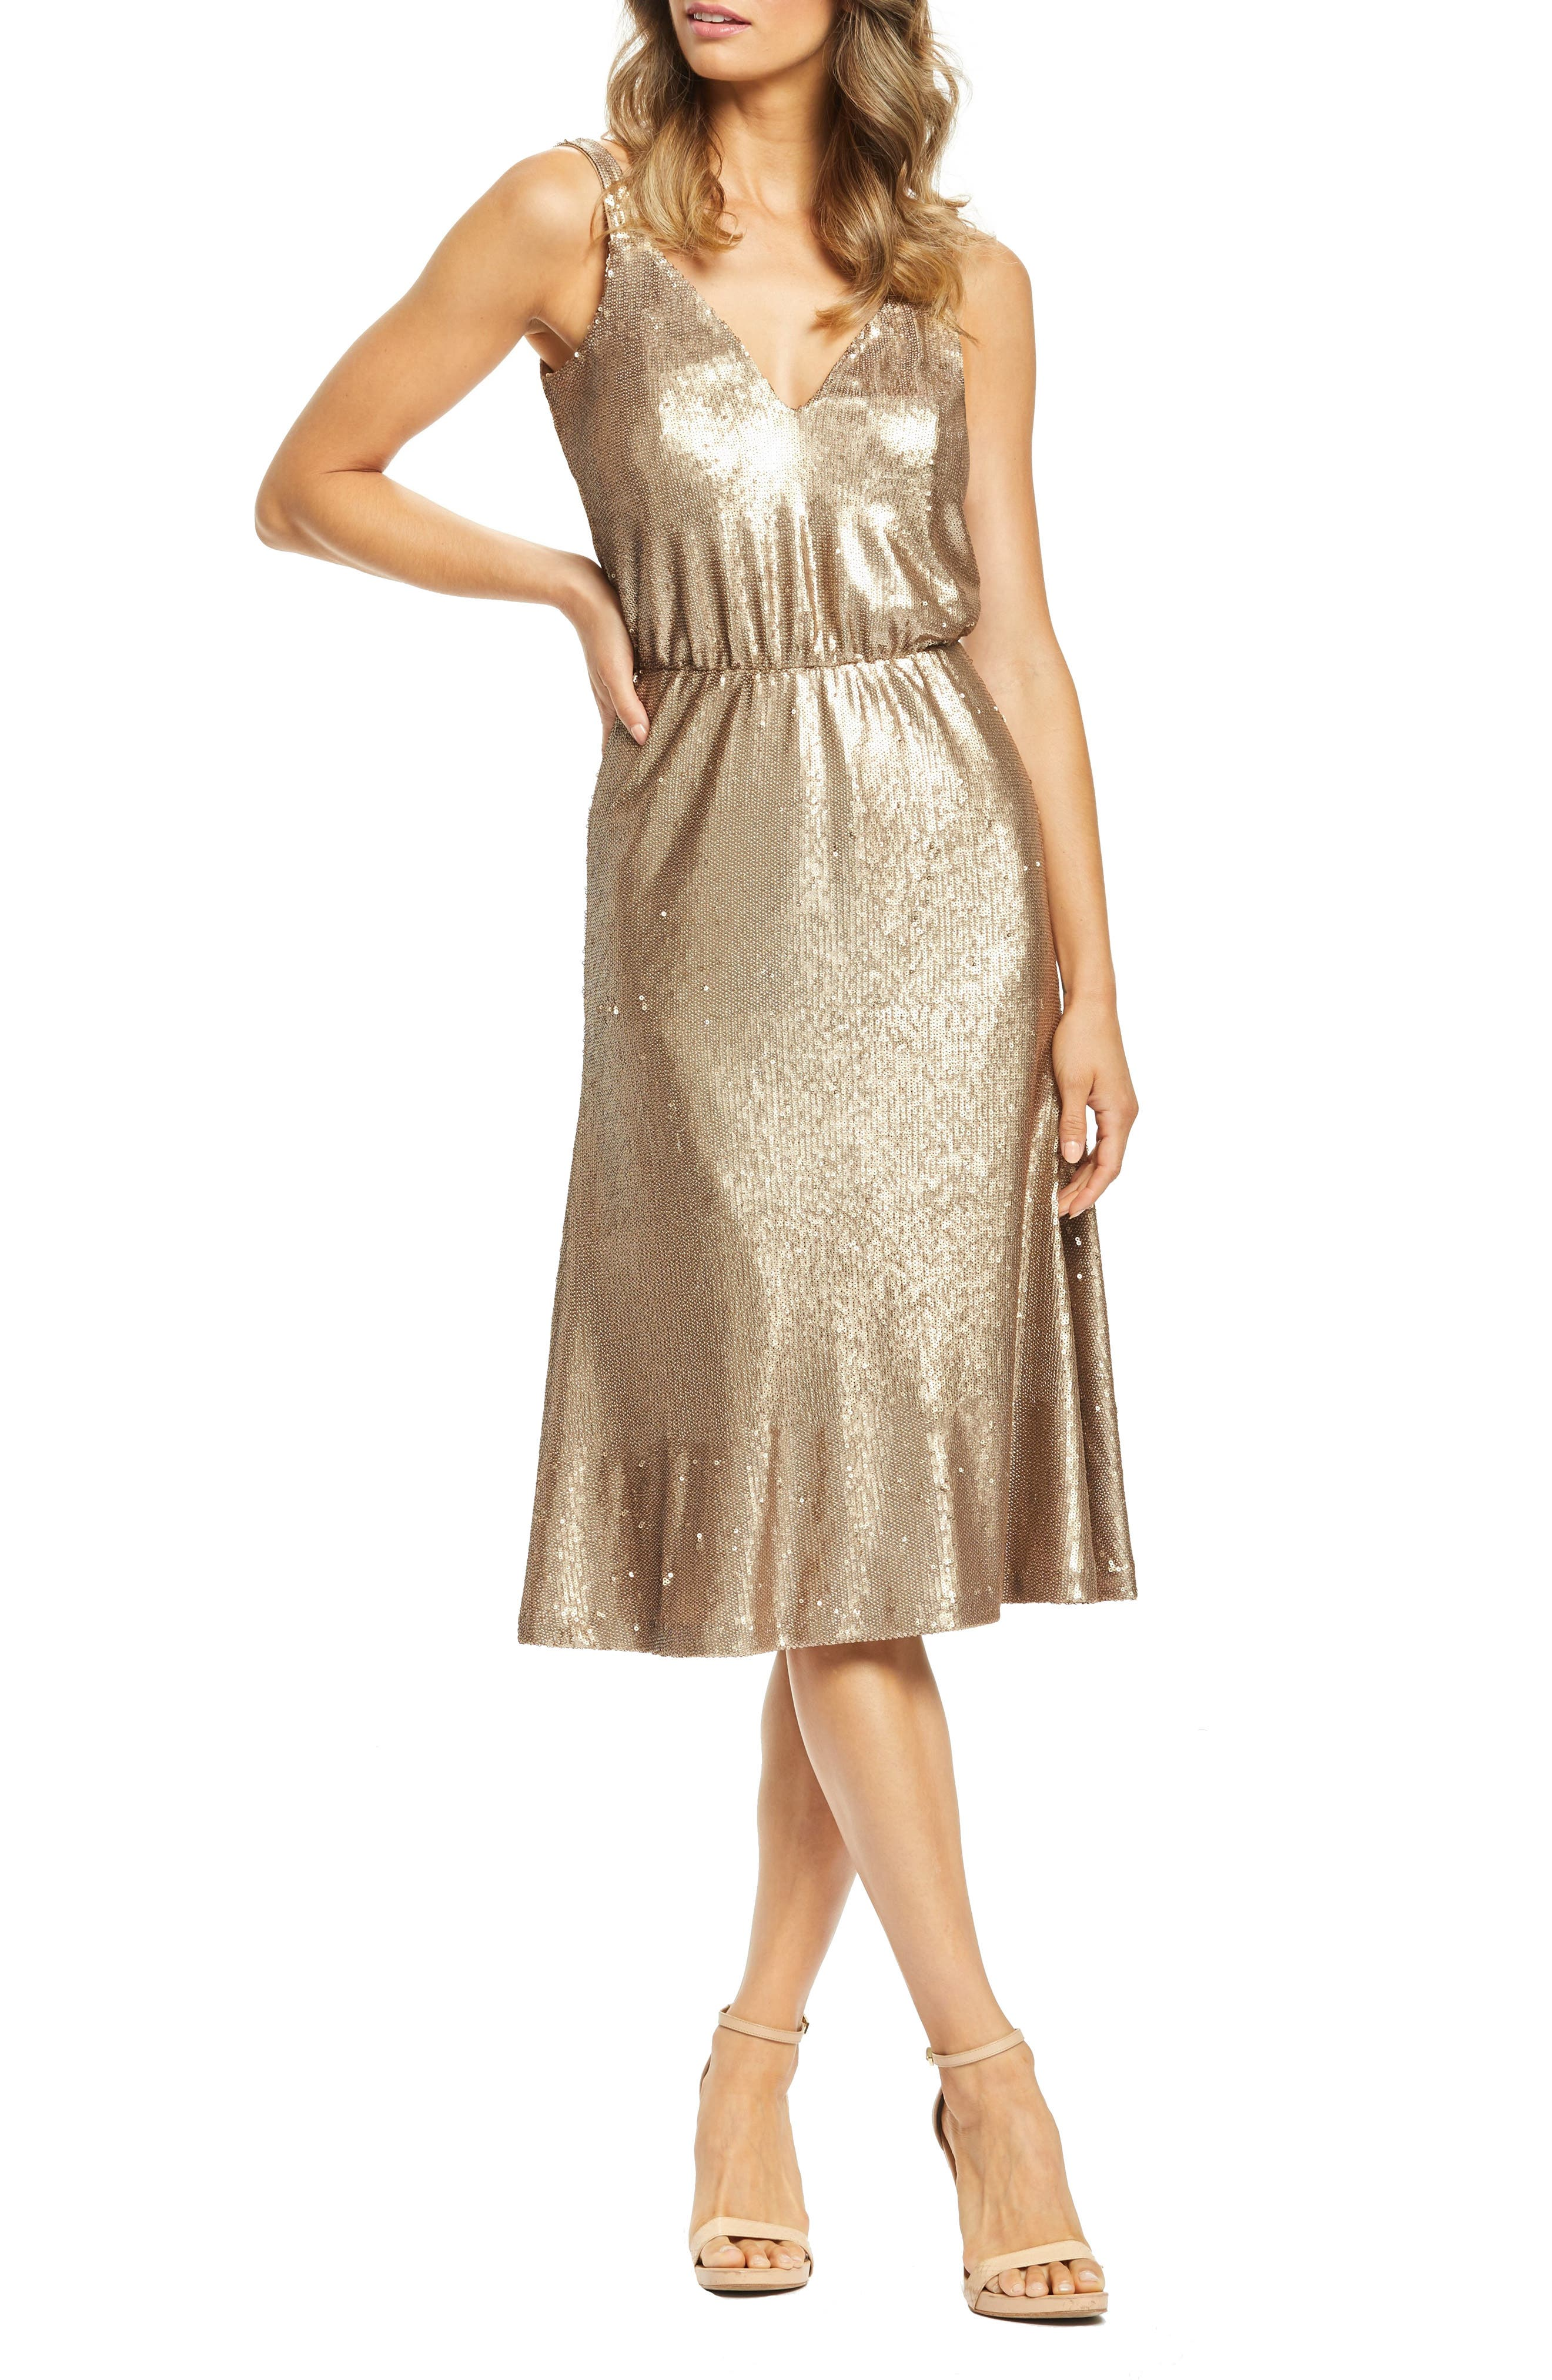 70s Prom, Formal, Evening, Party Dresses Womens Dress The Population Cameron Sequin Blouson Dress Size XX-Large - Metallic $248.00 AT vintagedancer.com